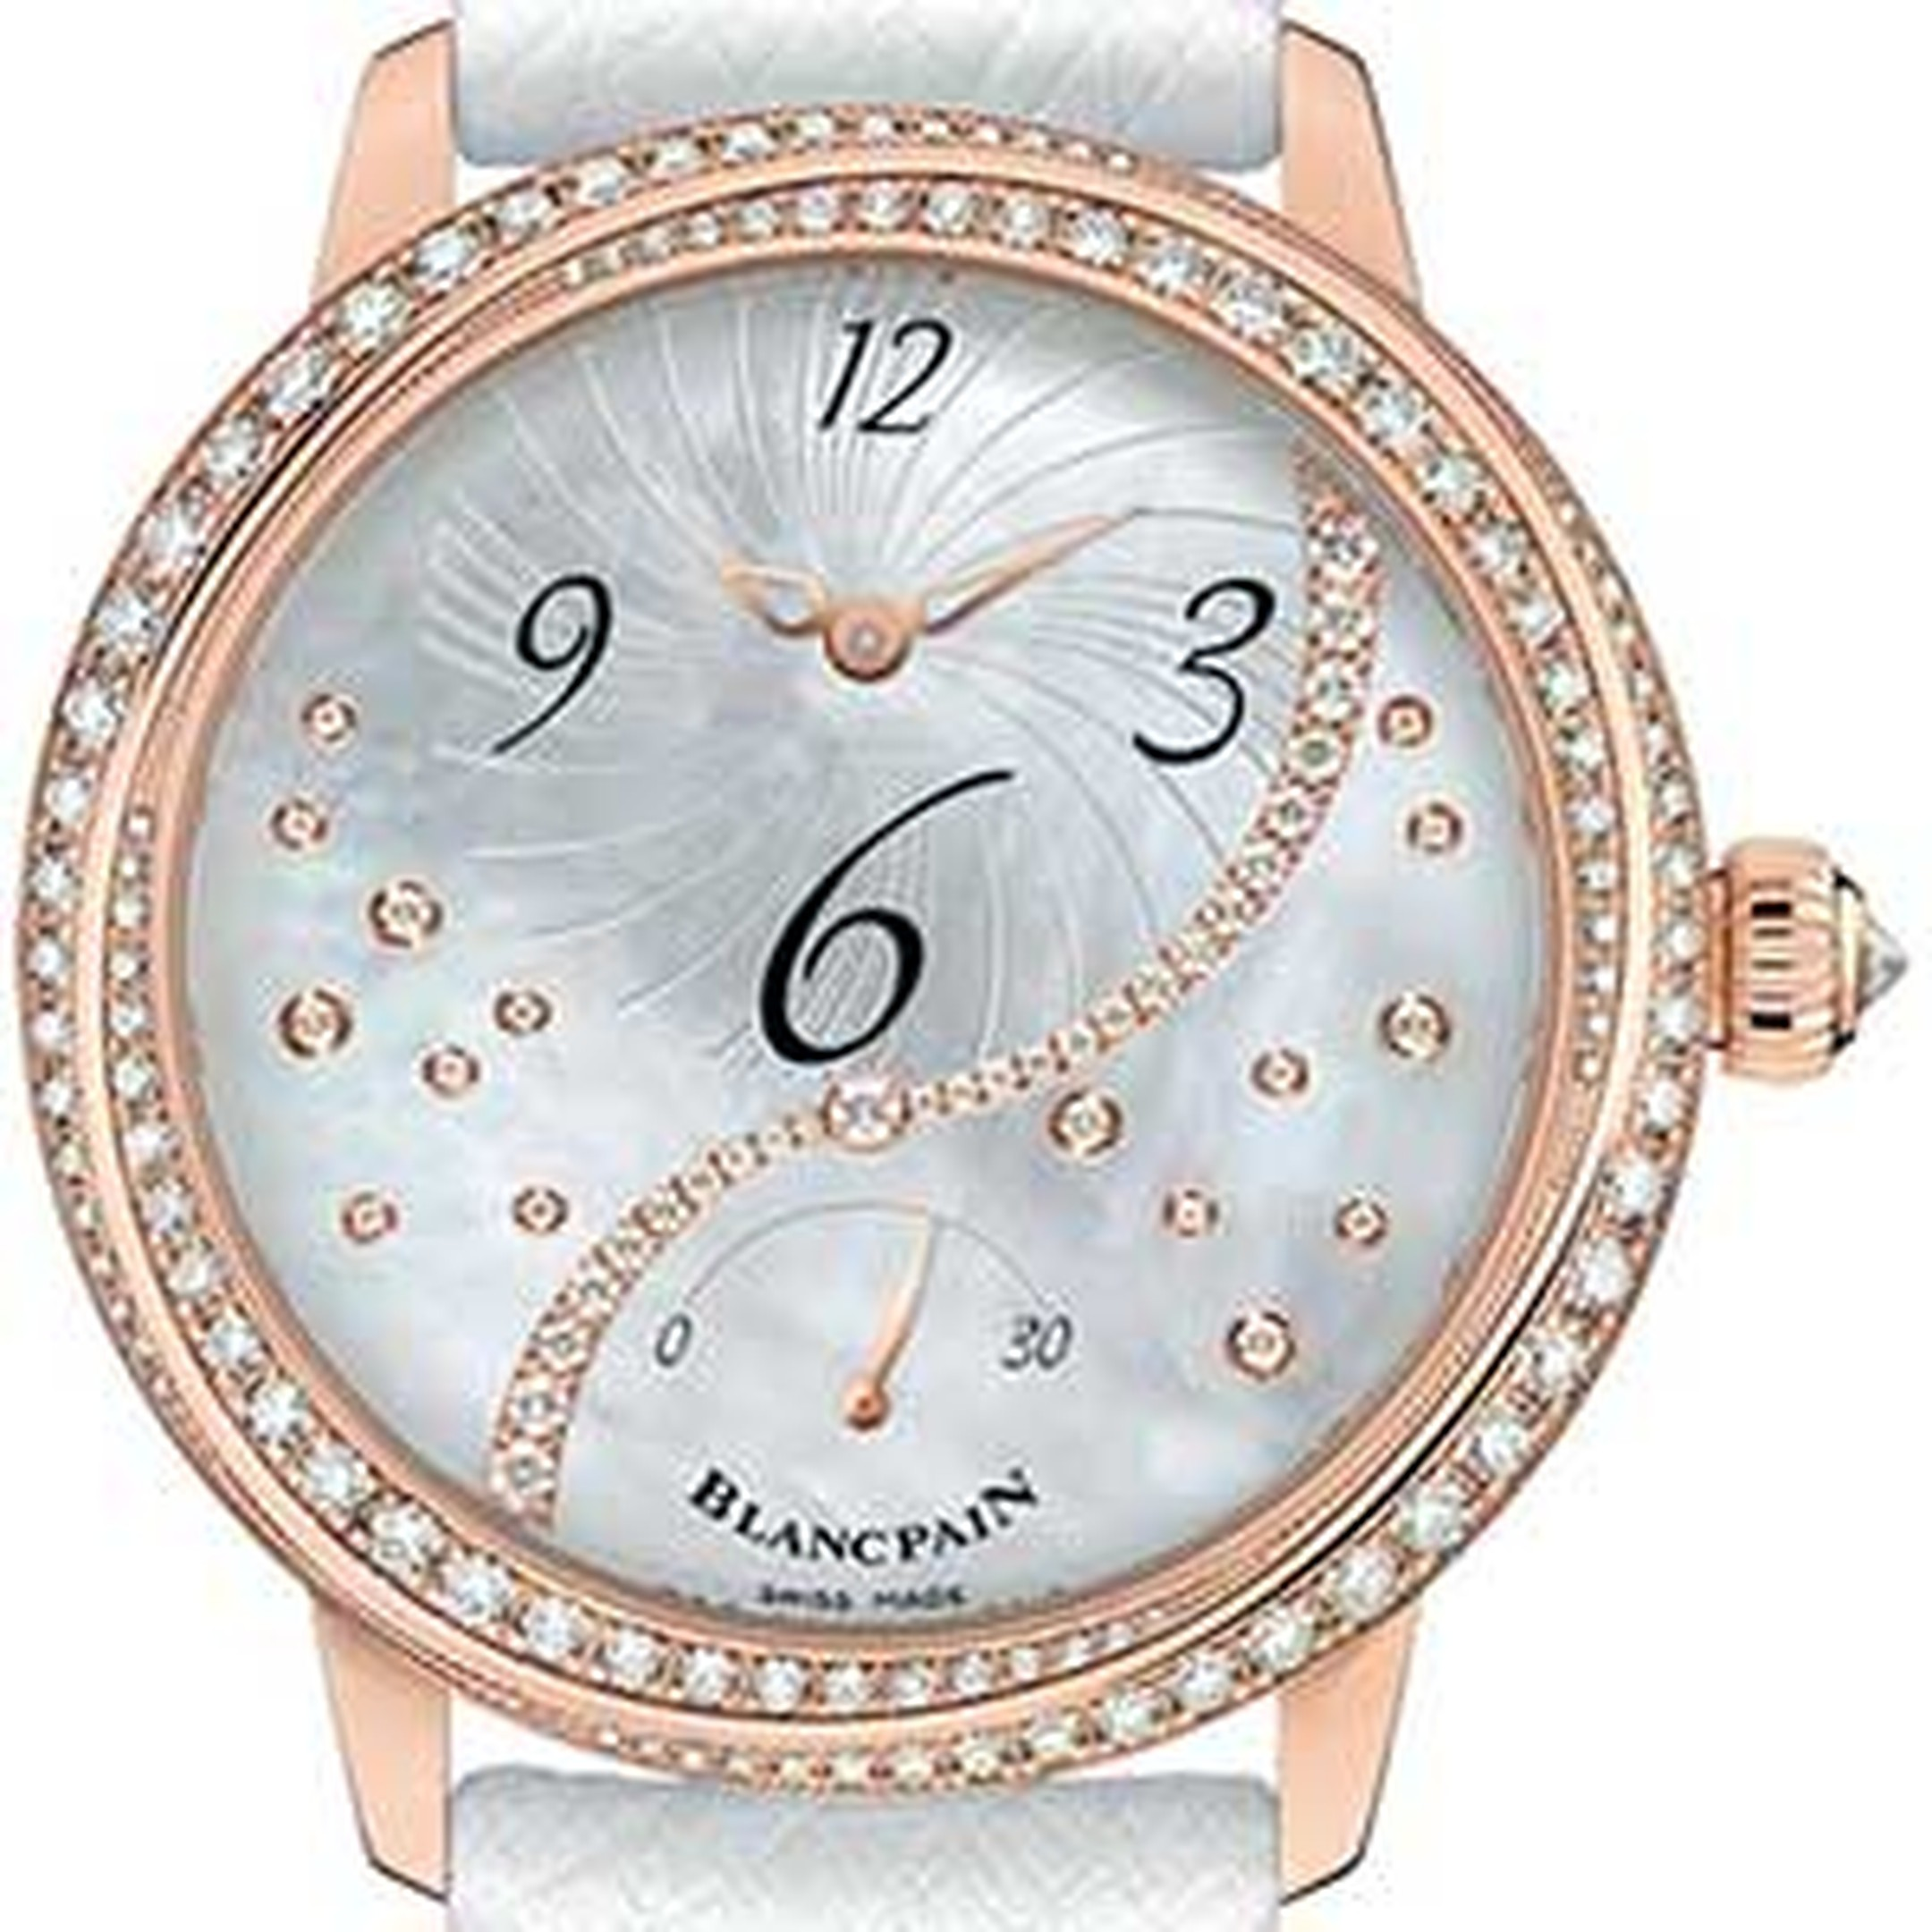 Blancpain watch HP